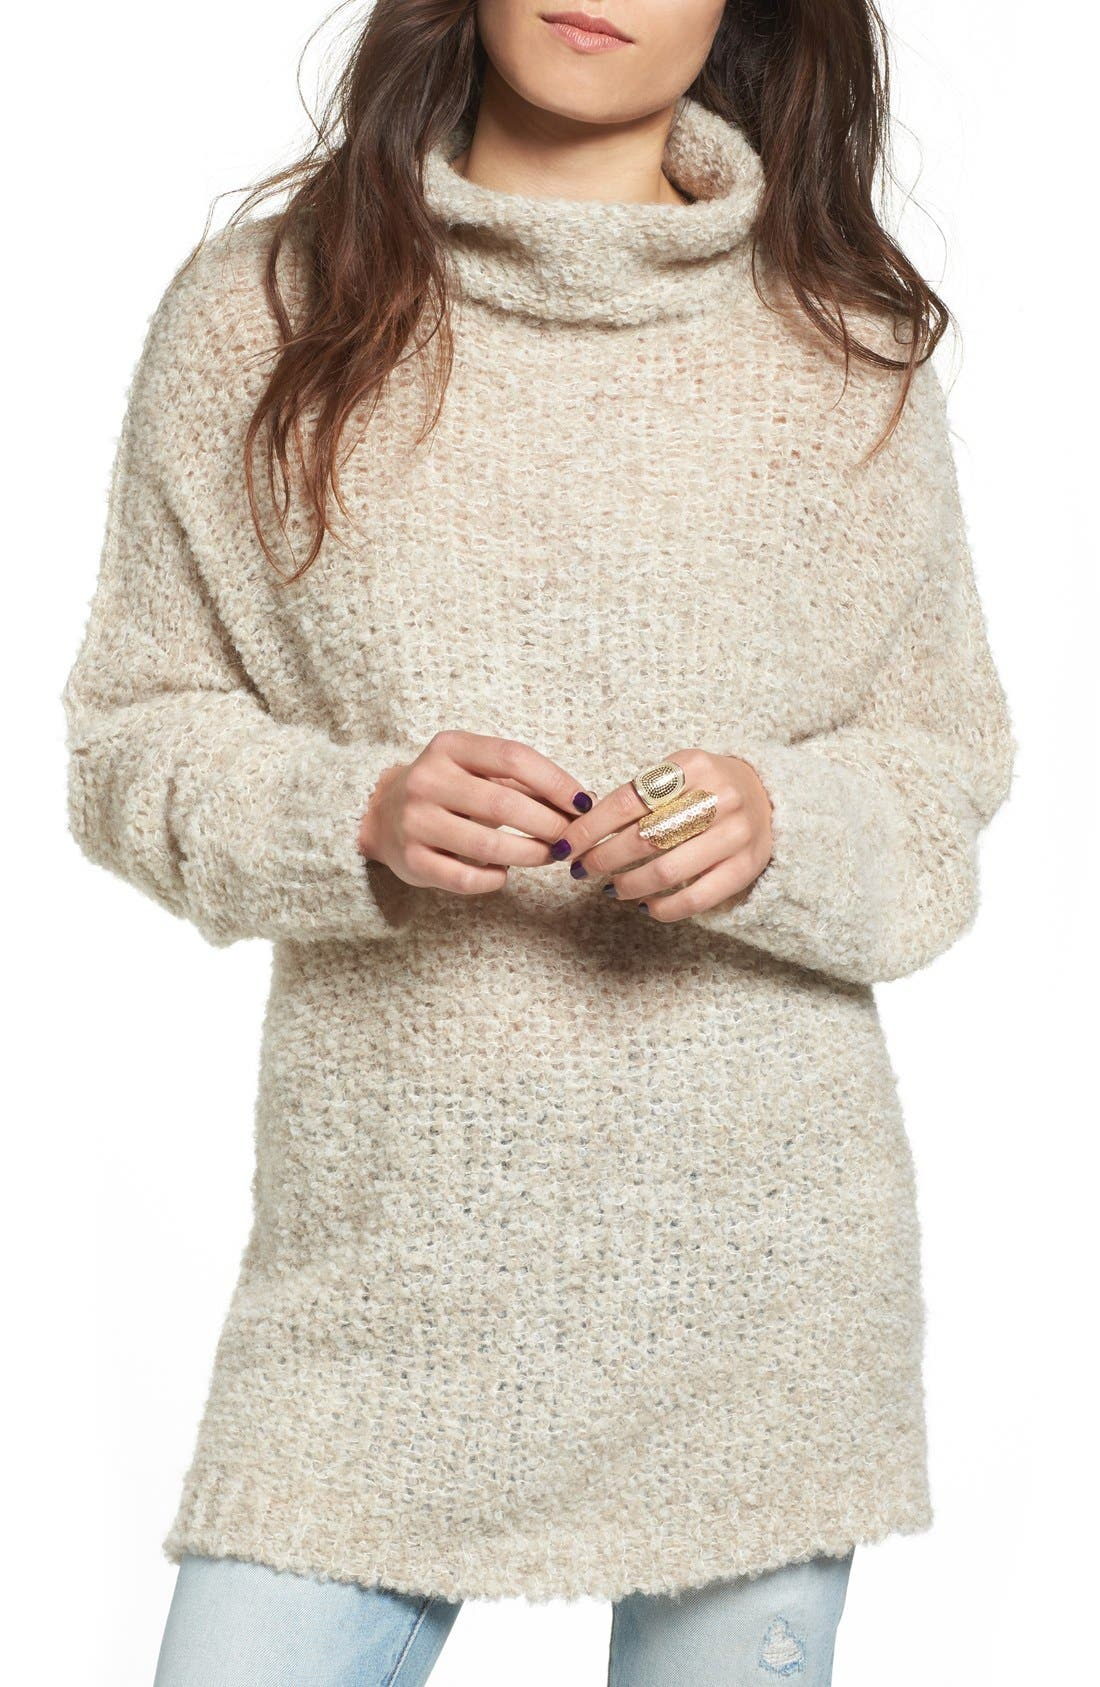 Main Image - Free People 'She's All That' Knit Turtleneck Sweater